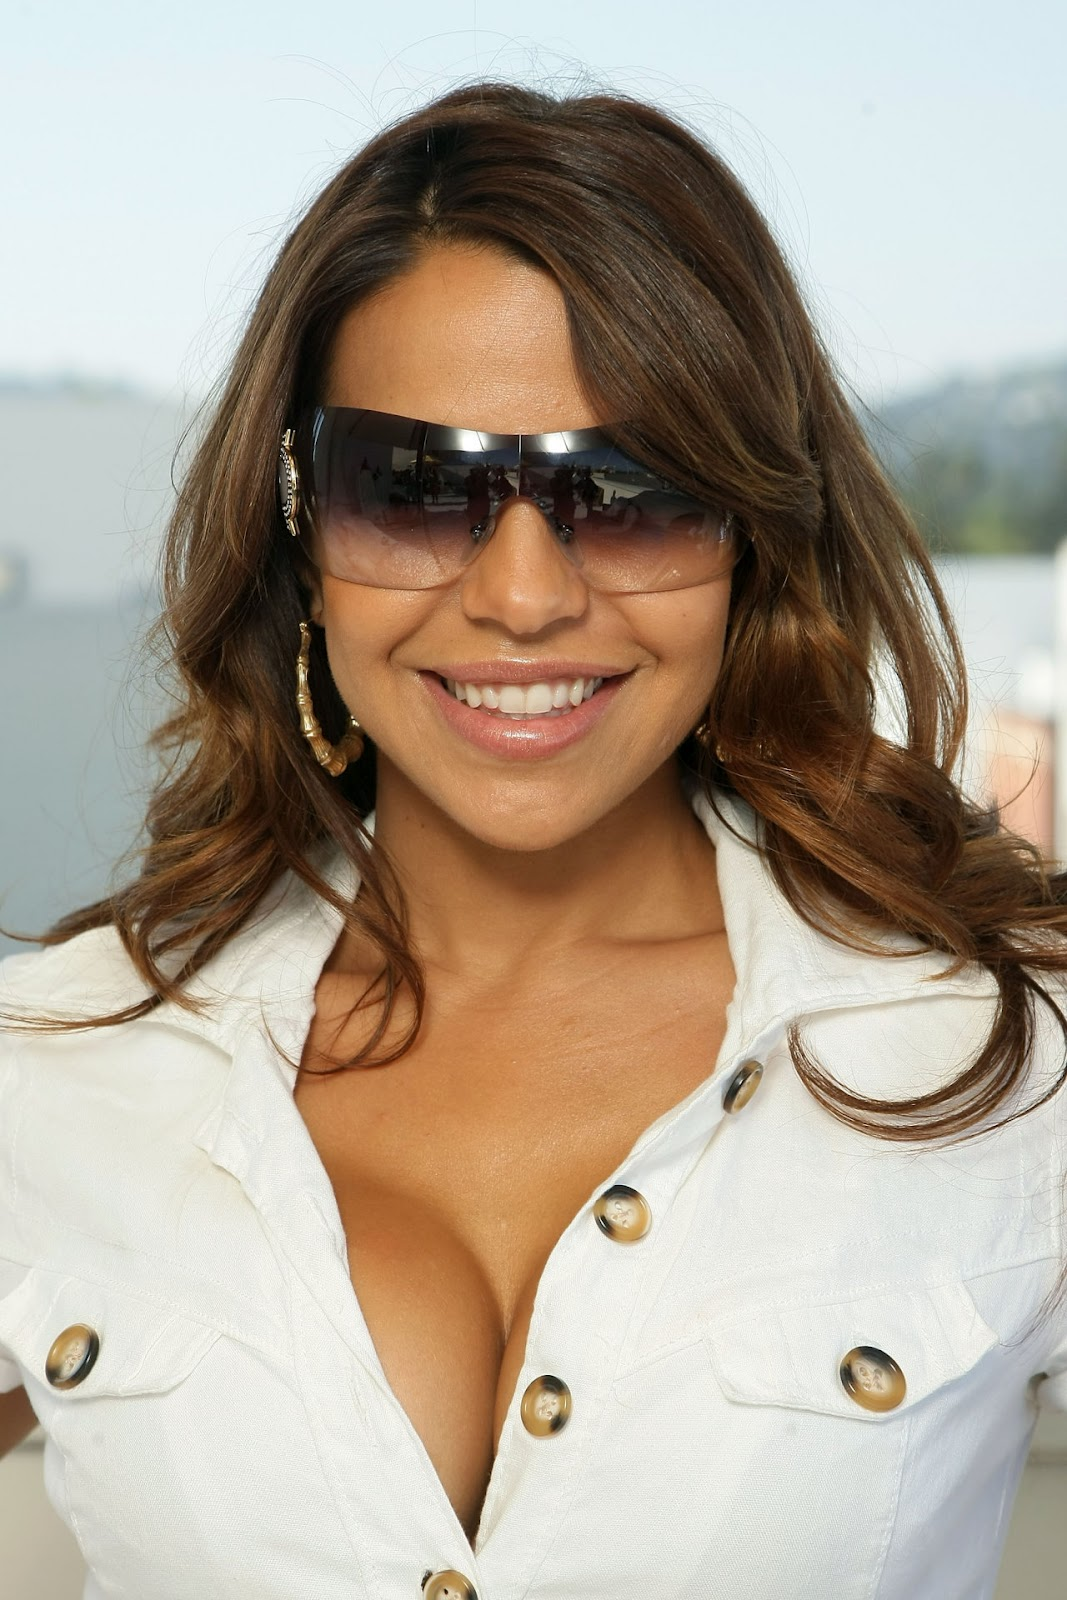 Vida guerra hacked means not